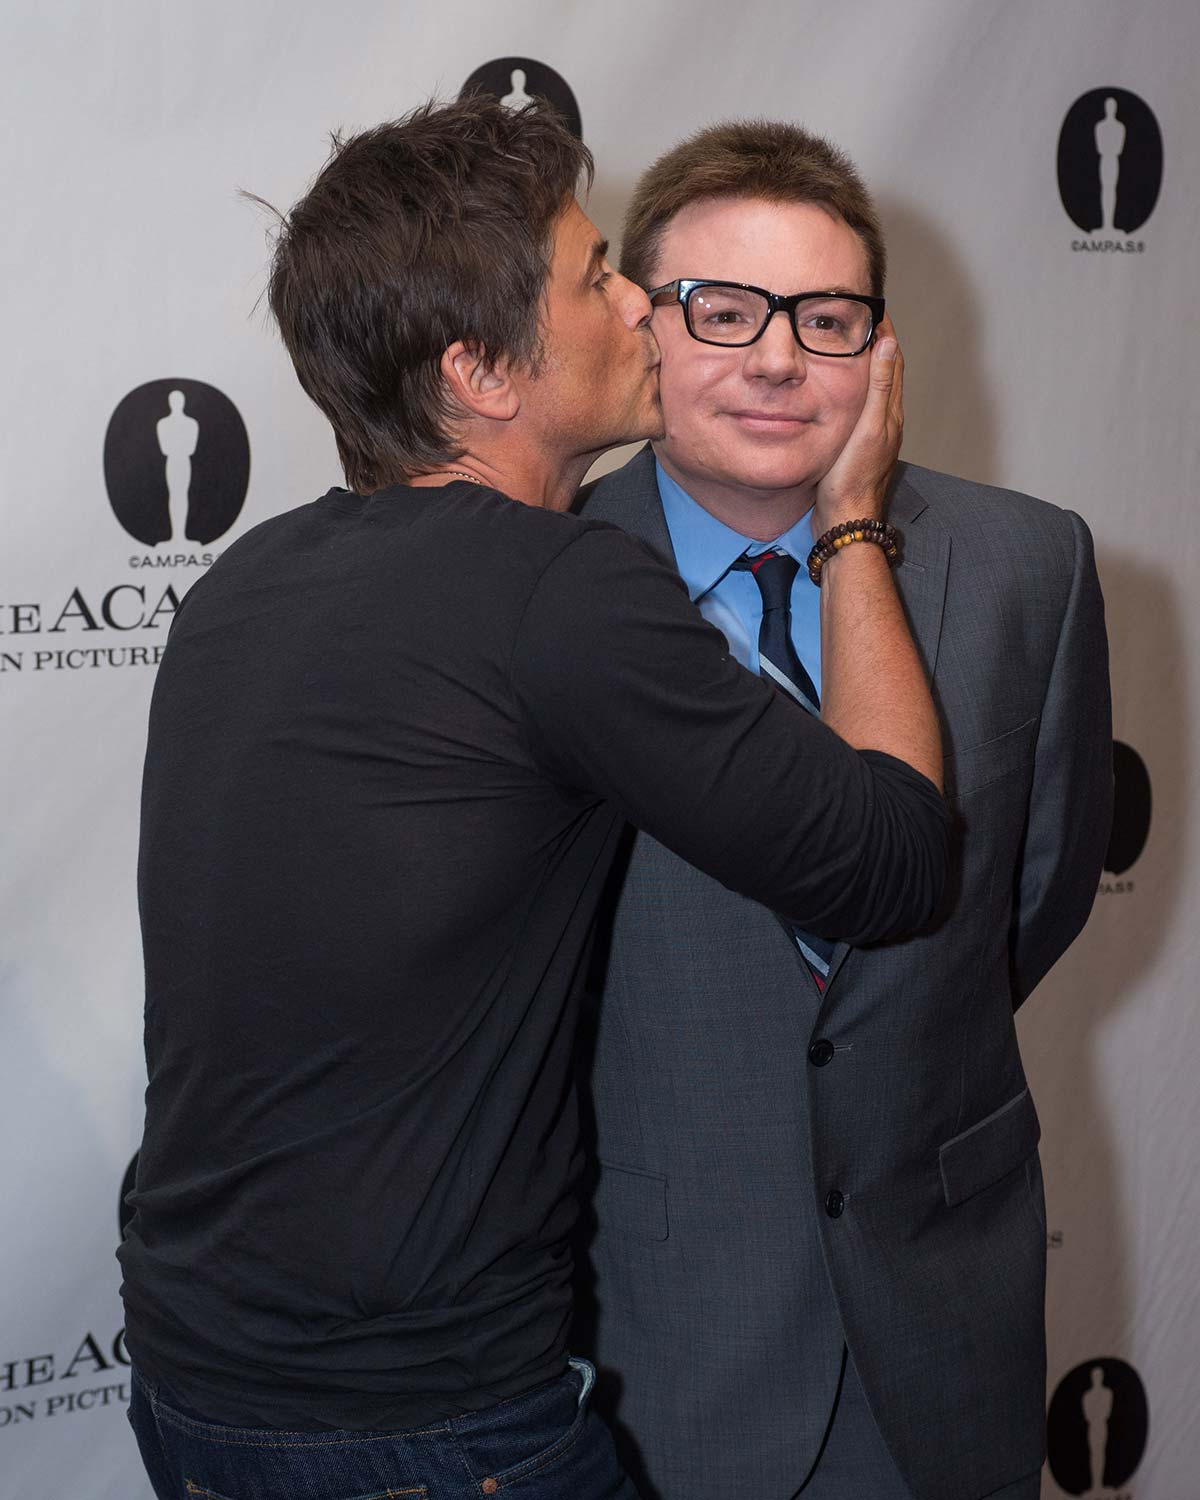 Rob Lowe and Mike Myers